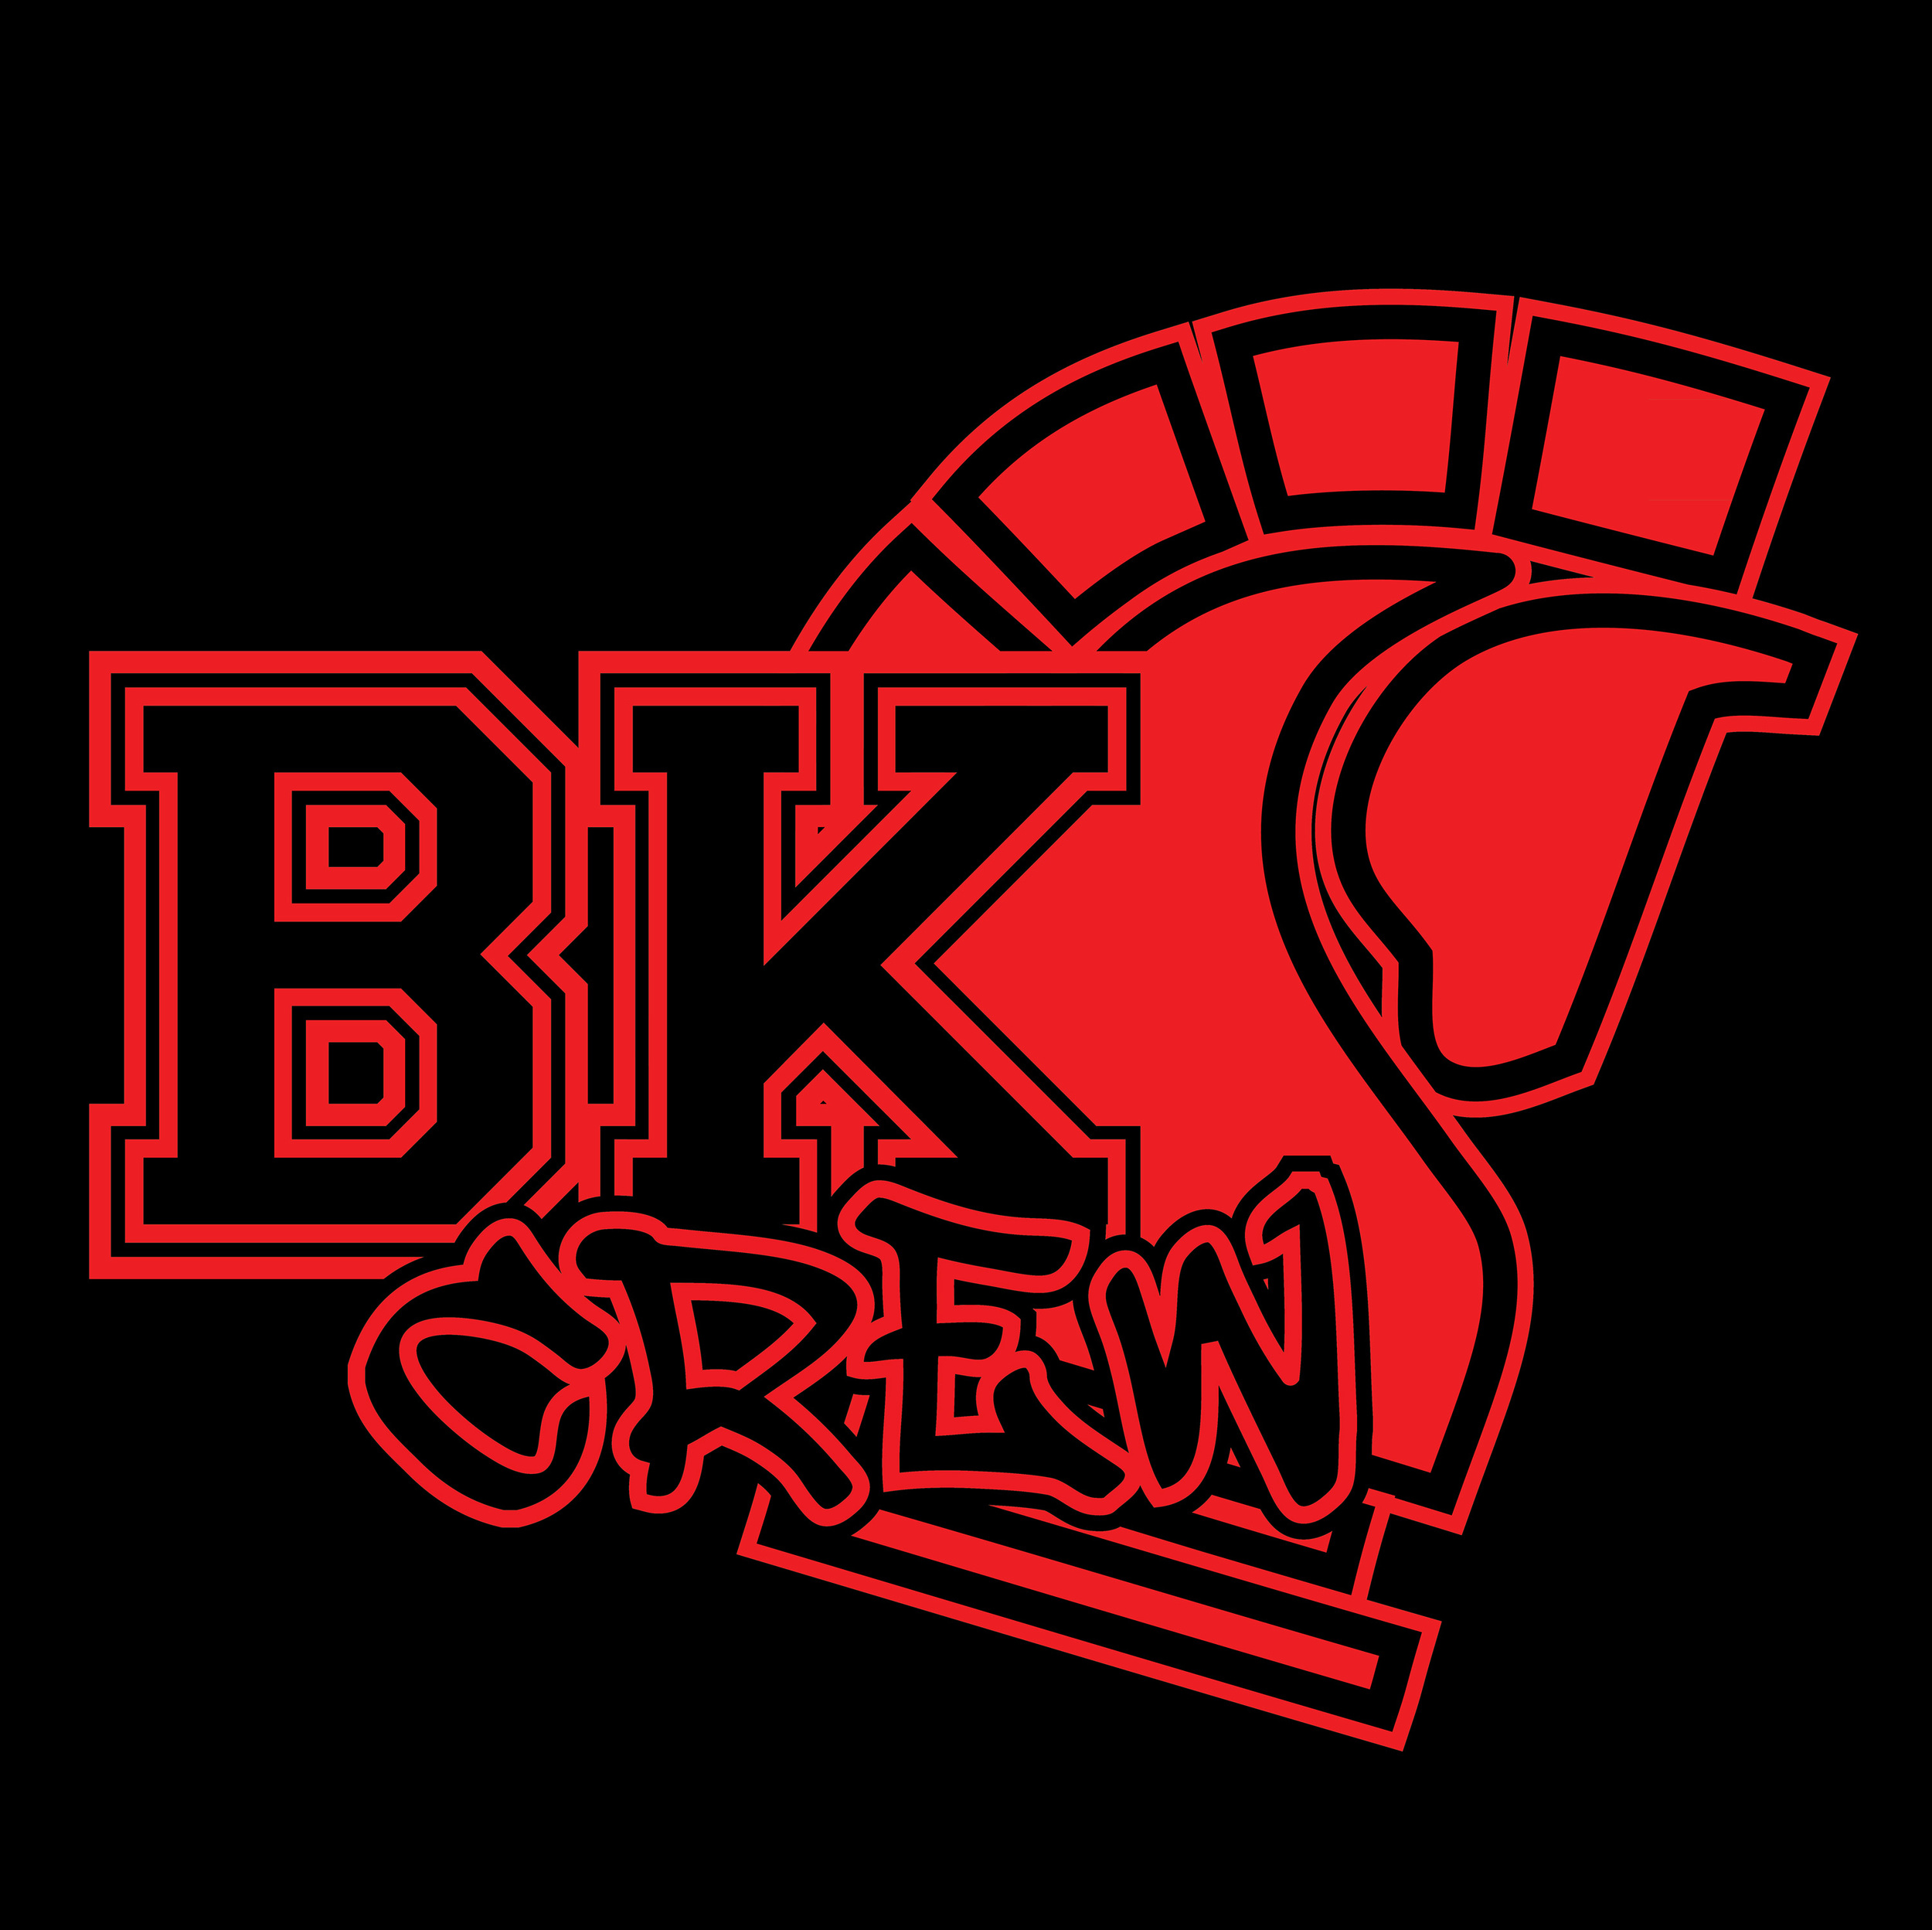 bkcrew.png